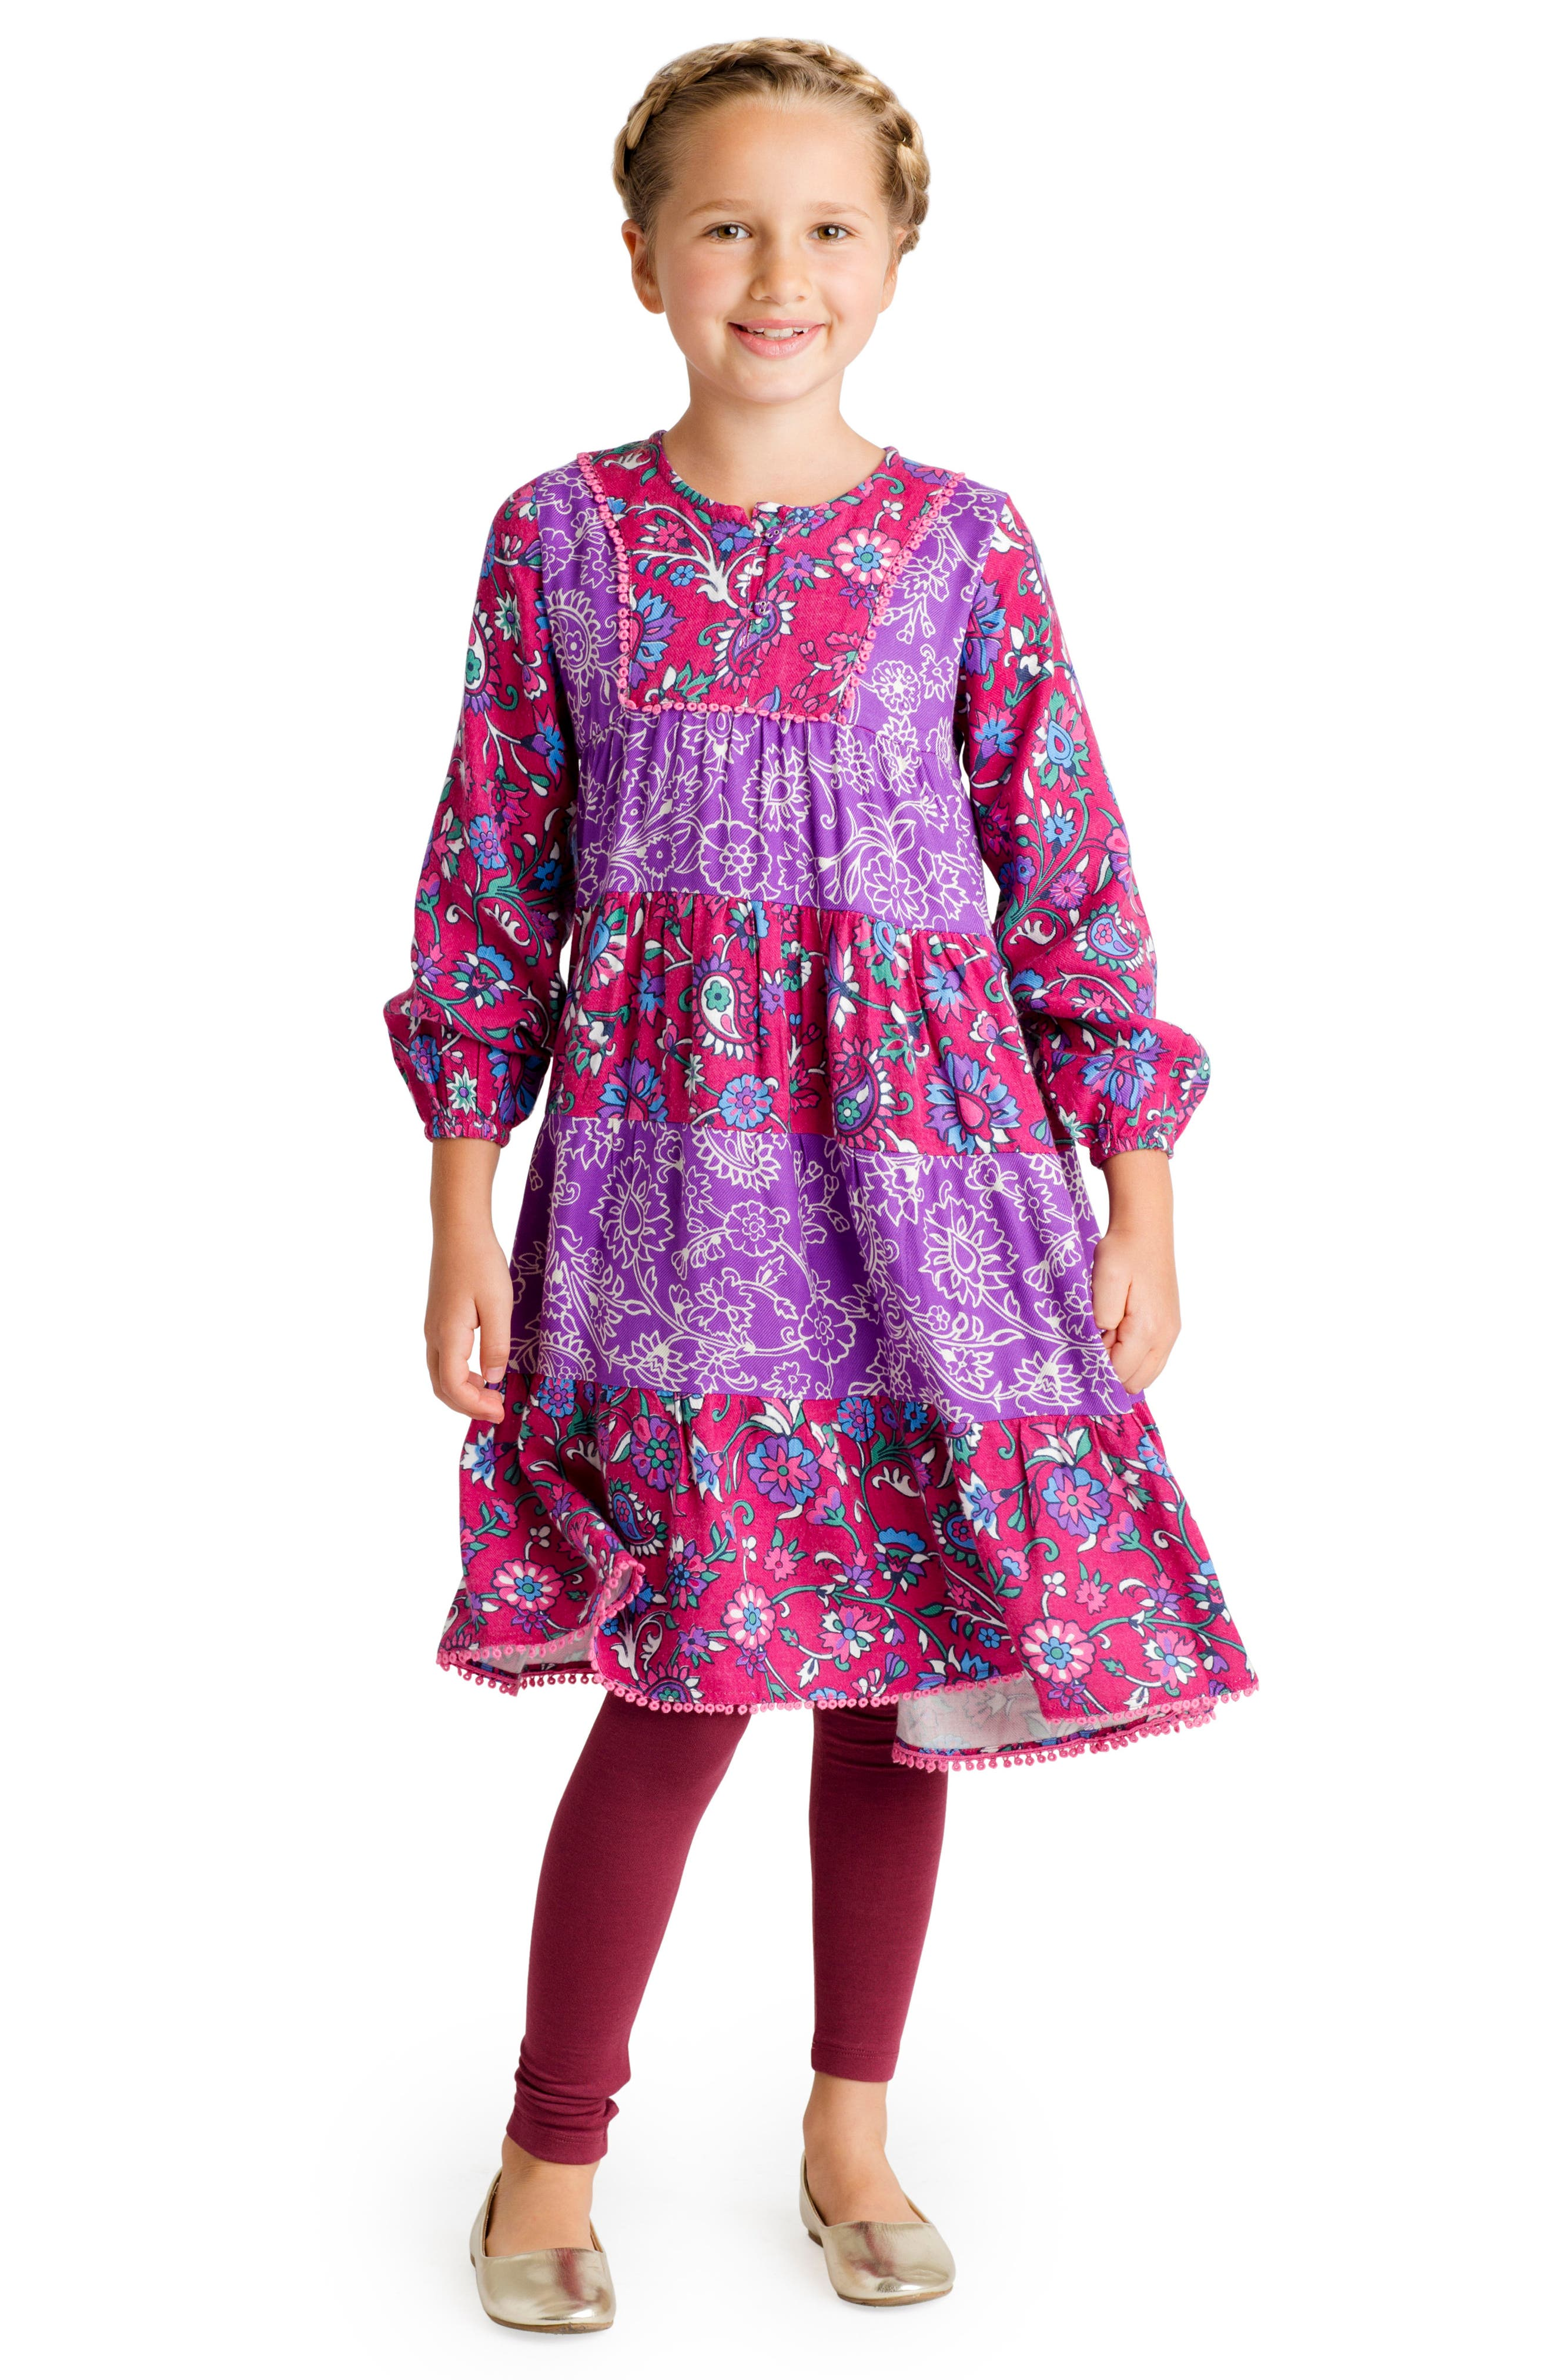 Tiered Floral Dress,                             Main thumbnail 1, color,                             500